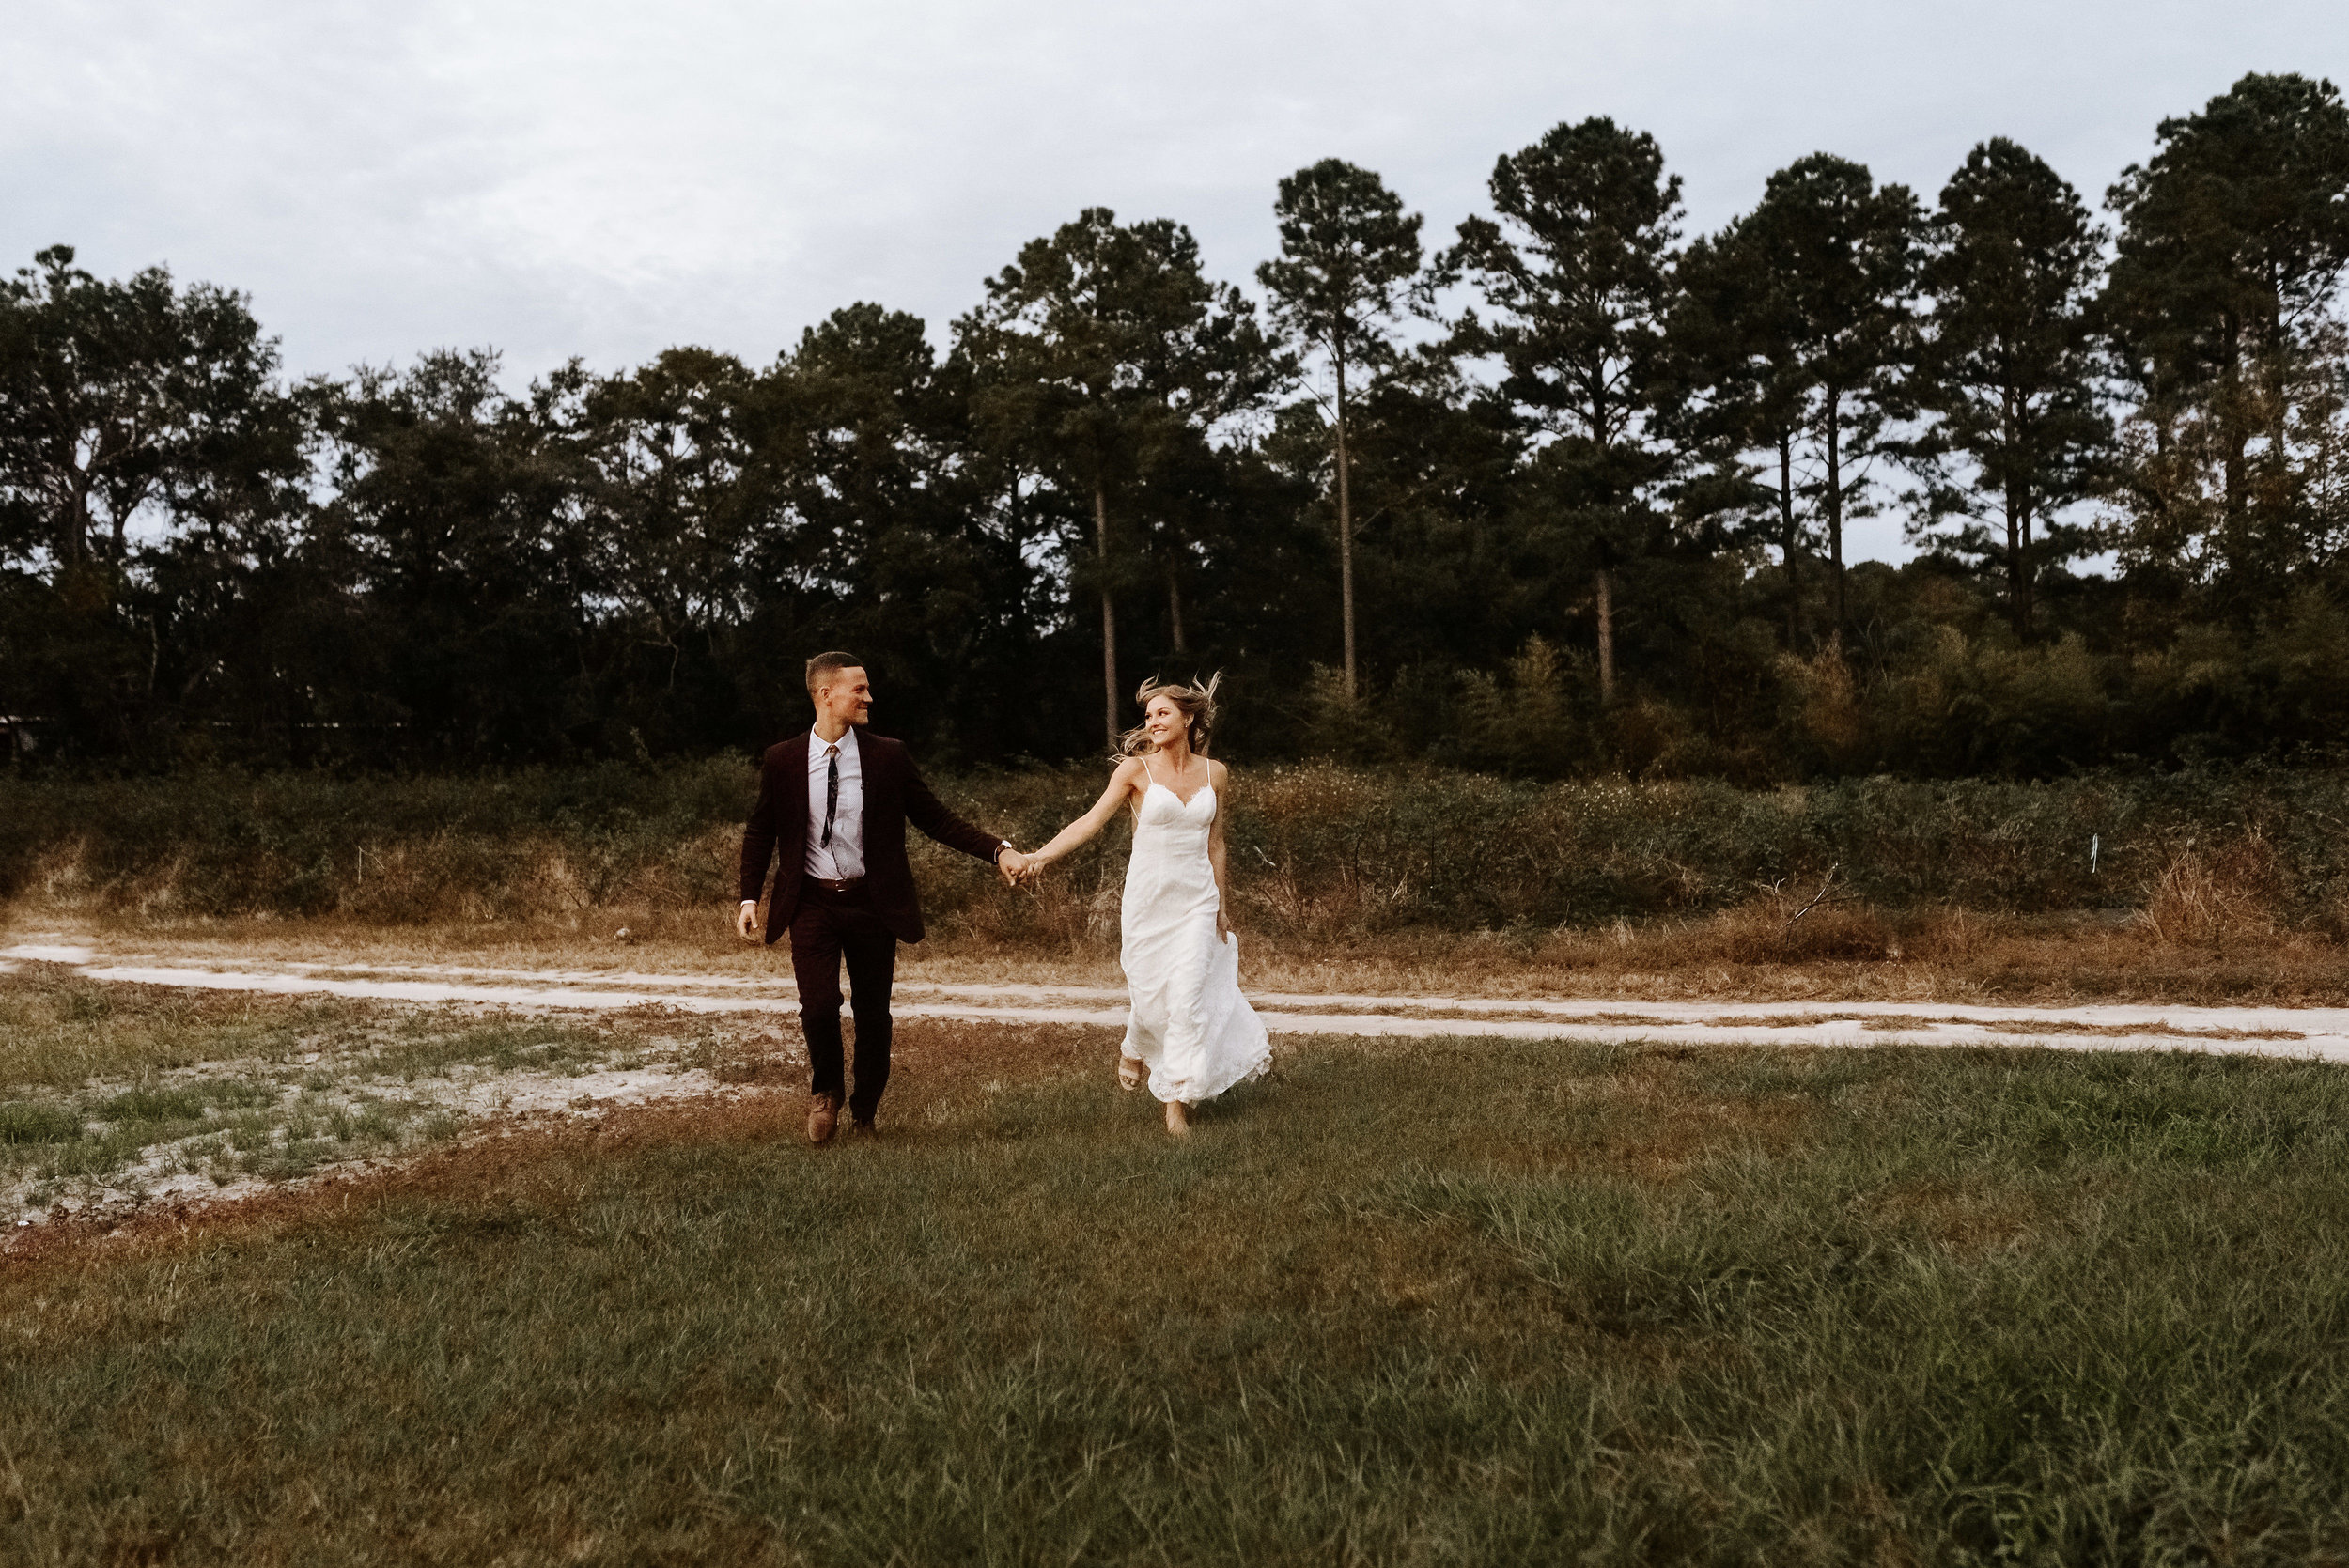 Kourtney_Sean_Savannah_Georgia_Wedding_Wormsloe_Histroic_Site_Coastal_Georgia_Botanical_Gardens_Photography_by_V_4329.jpg